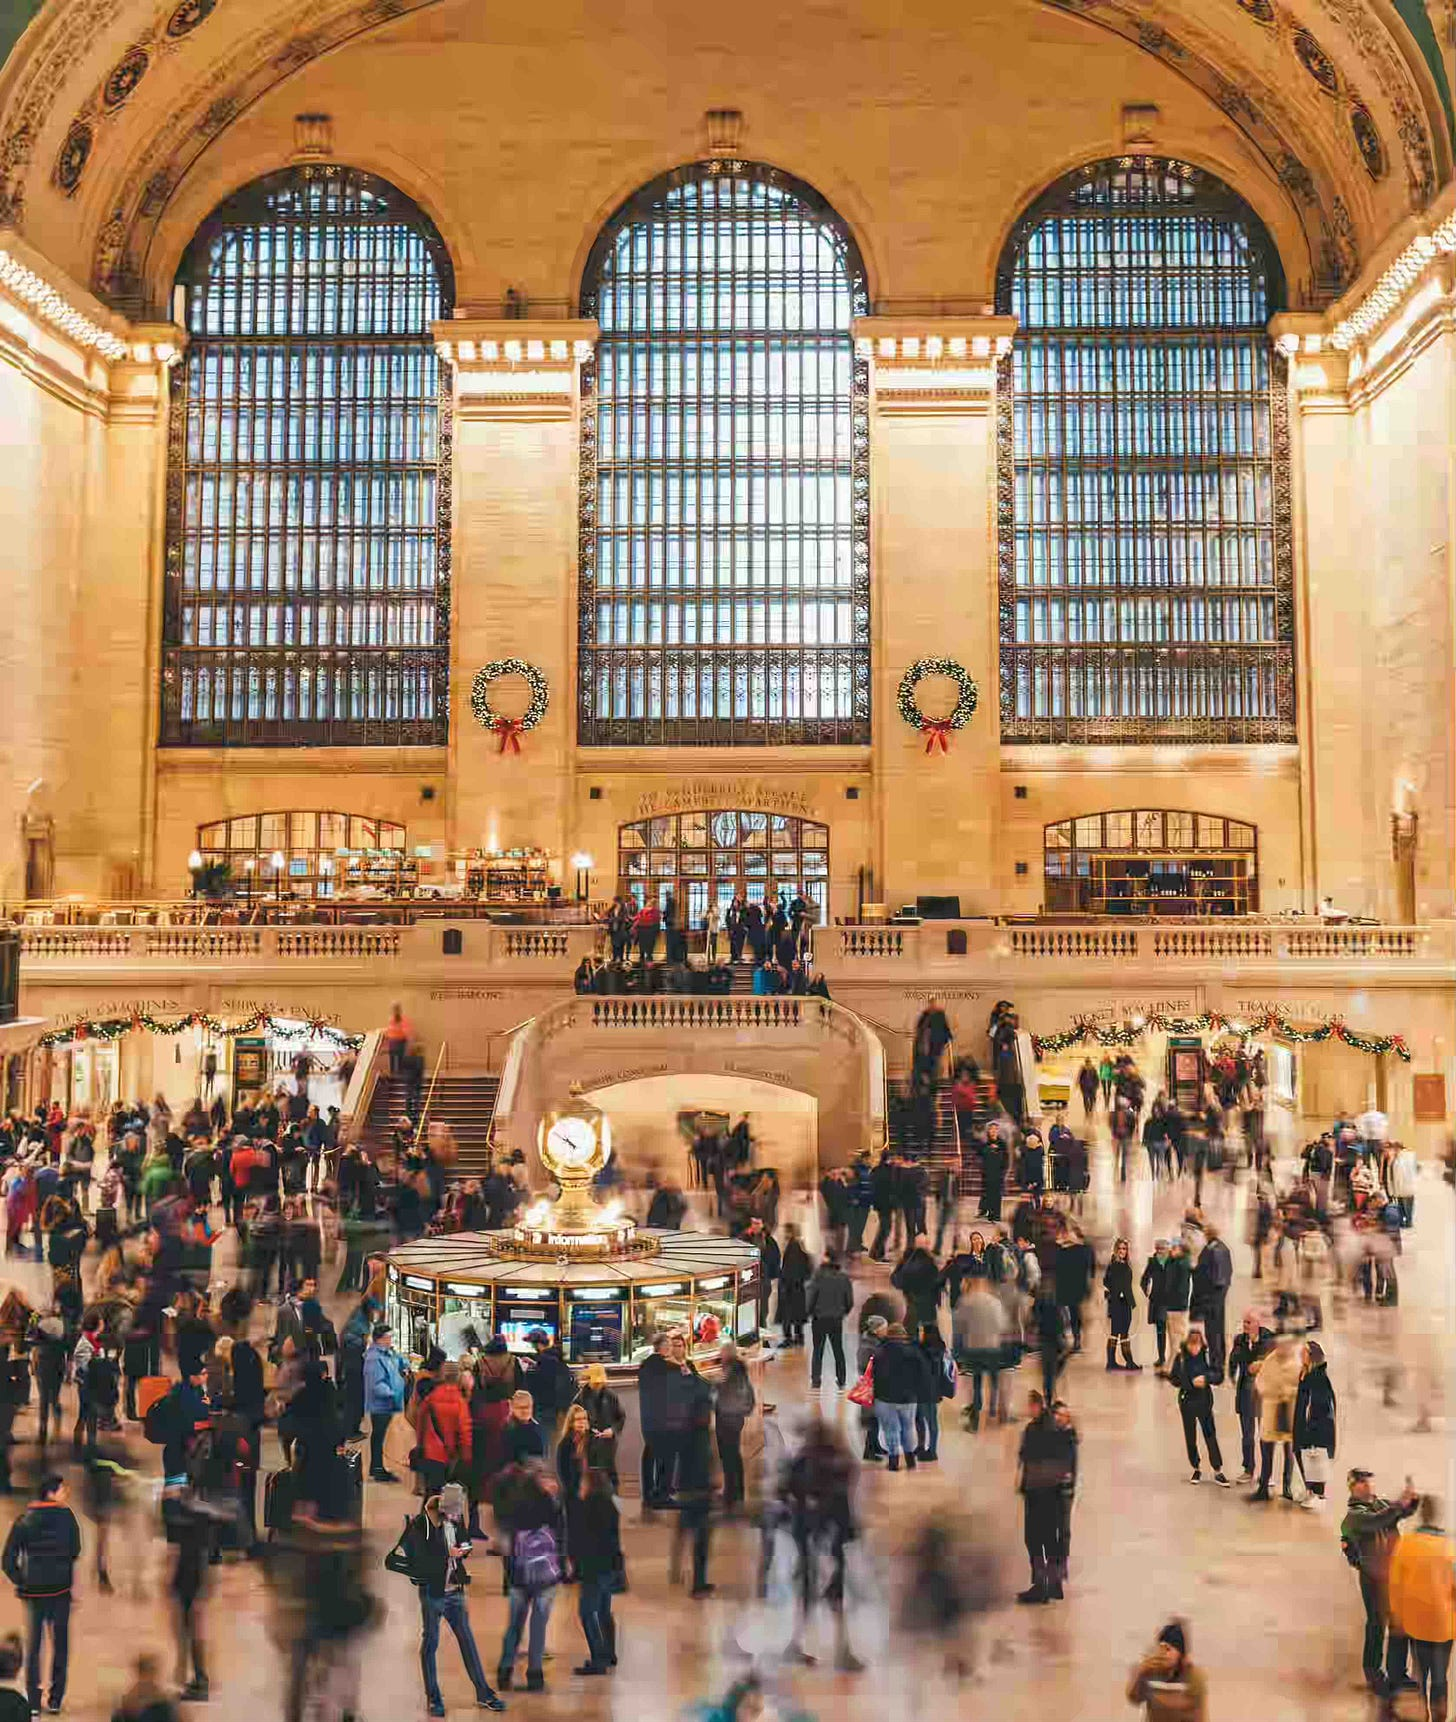 A busy day in grand central station, New York to explain an example about photo lock and photo security.